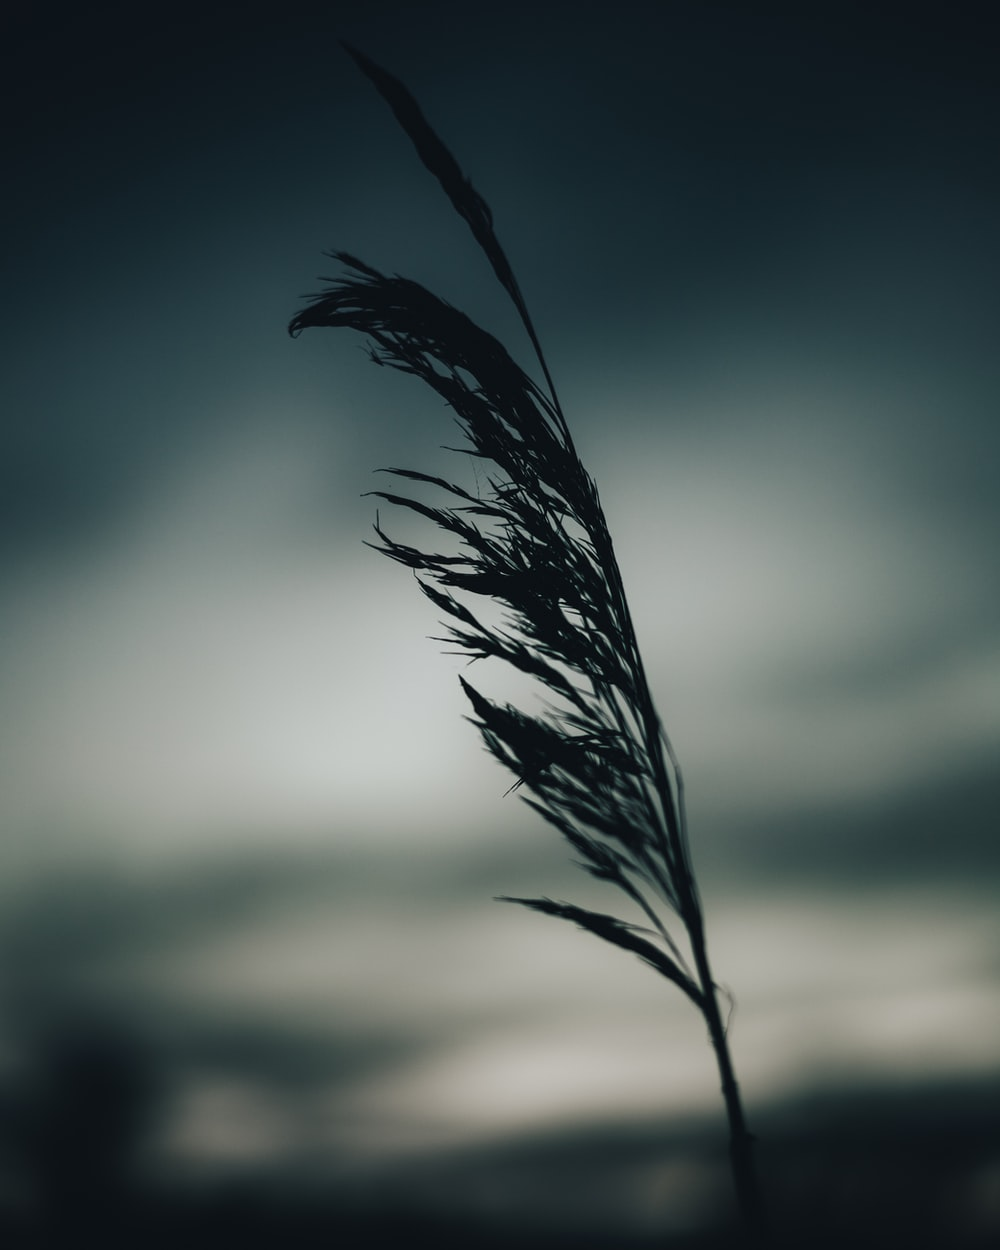 black feather in close up photography